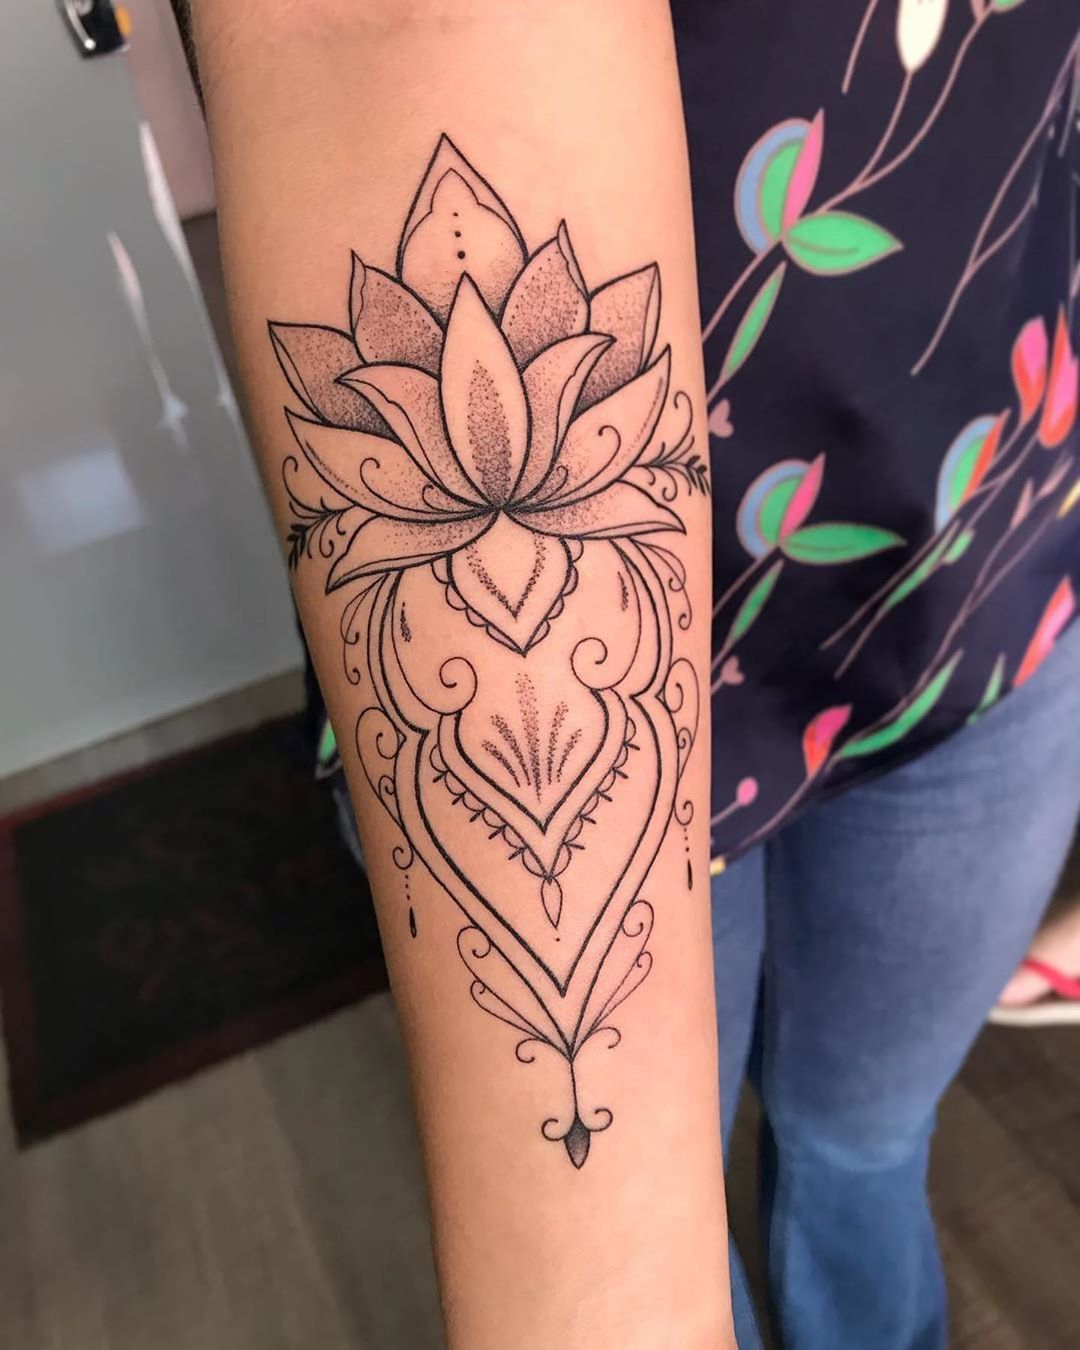 Flor De Loto Ornamental Con Puntillismo Tattoo By Thugpaiva Tatuaje Tatuagem Tattooed Tatto Forearm Tattoo Women Forearm Tattoos Small Forearm Tattoos